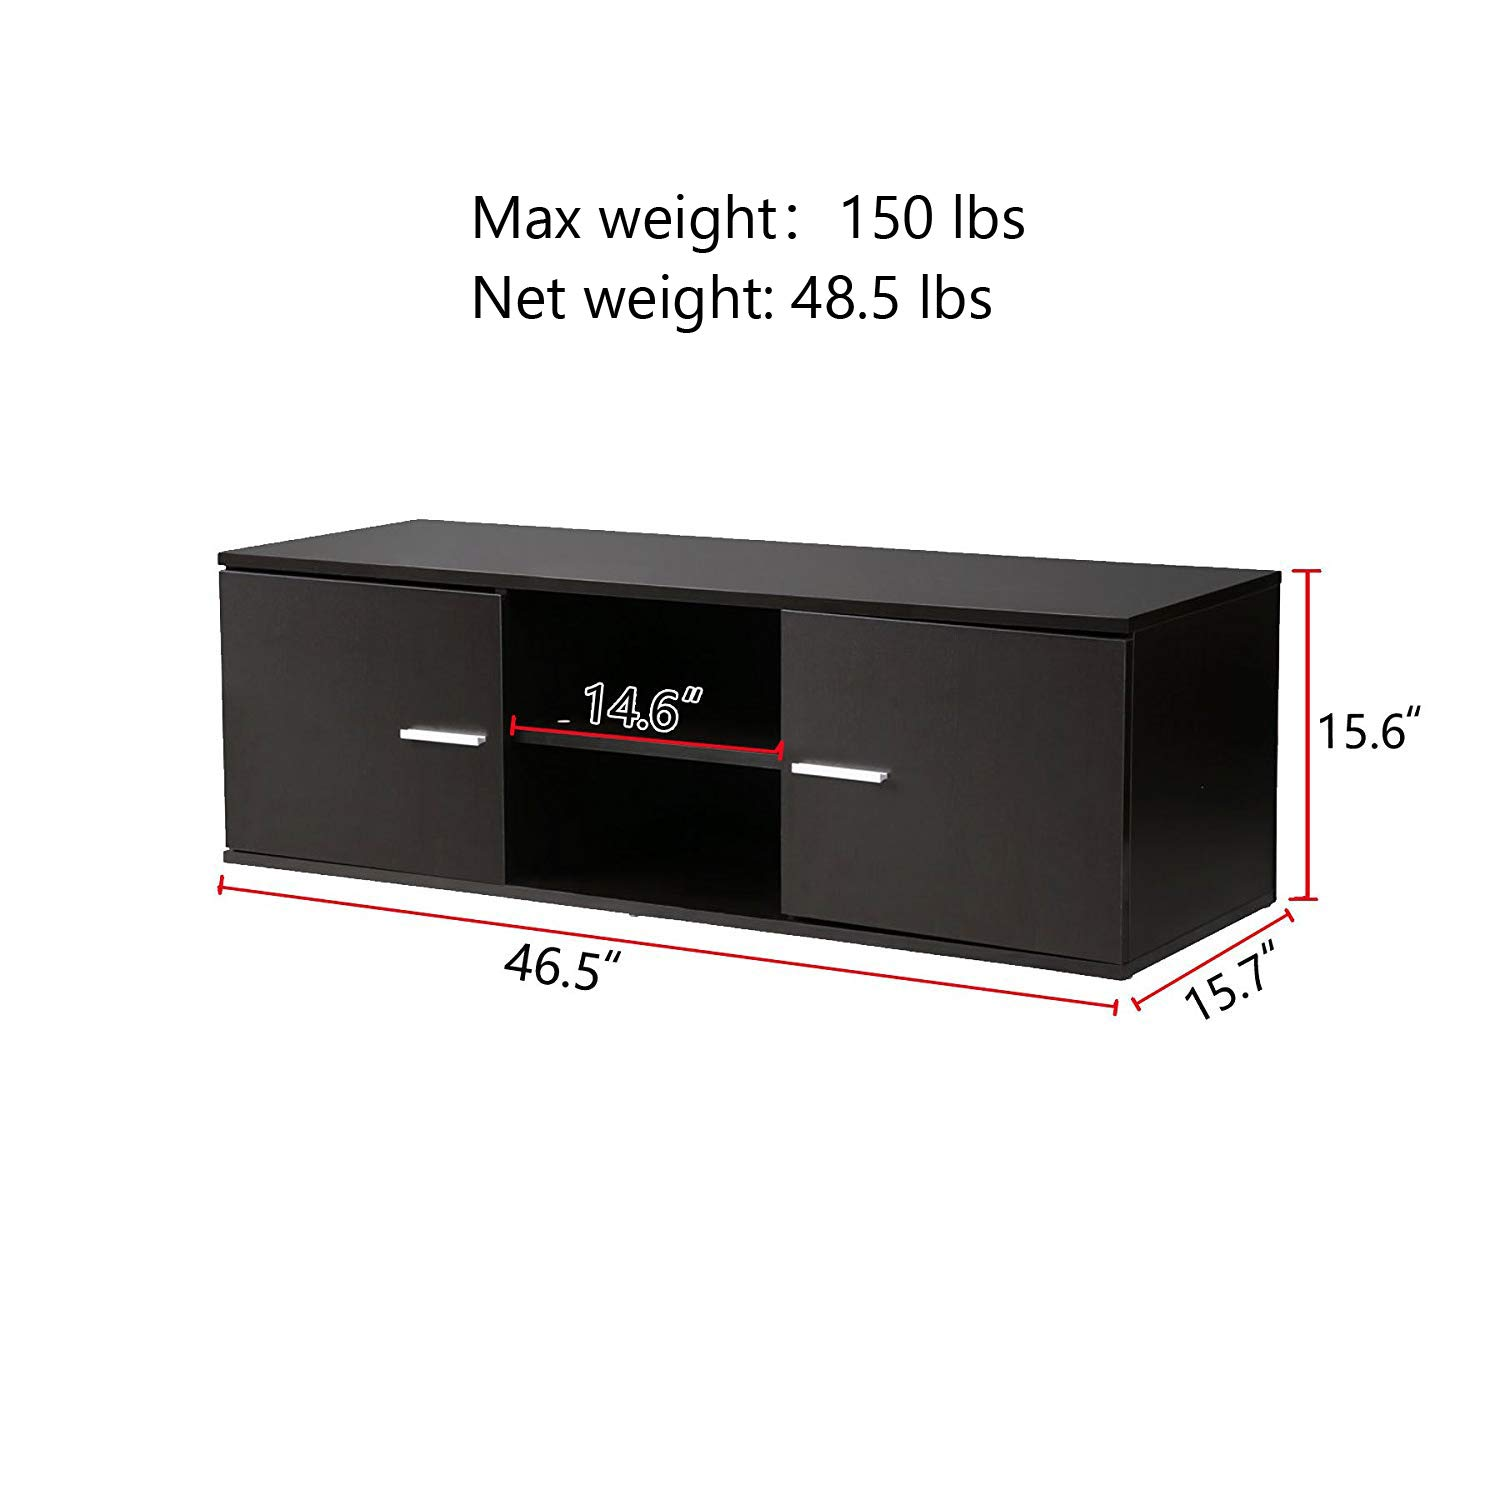 Wood TV Stand Storage Console, TV Component Bench, Econ Entertainment Center with Storage Bins, Black by Best and Affordable (Image #2)